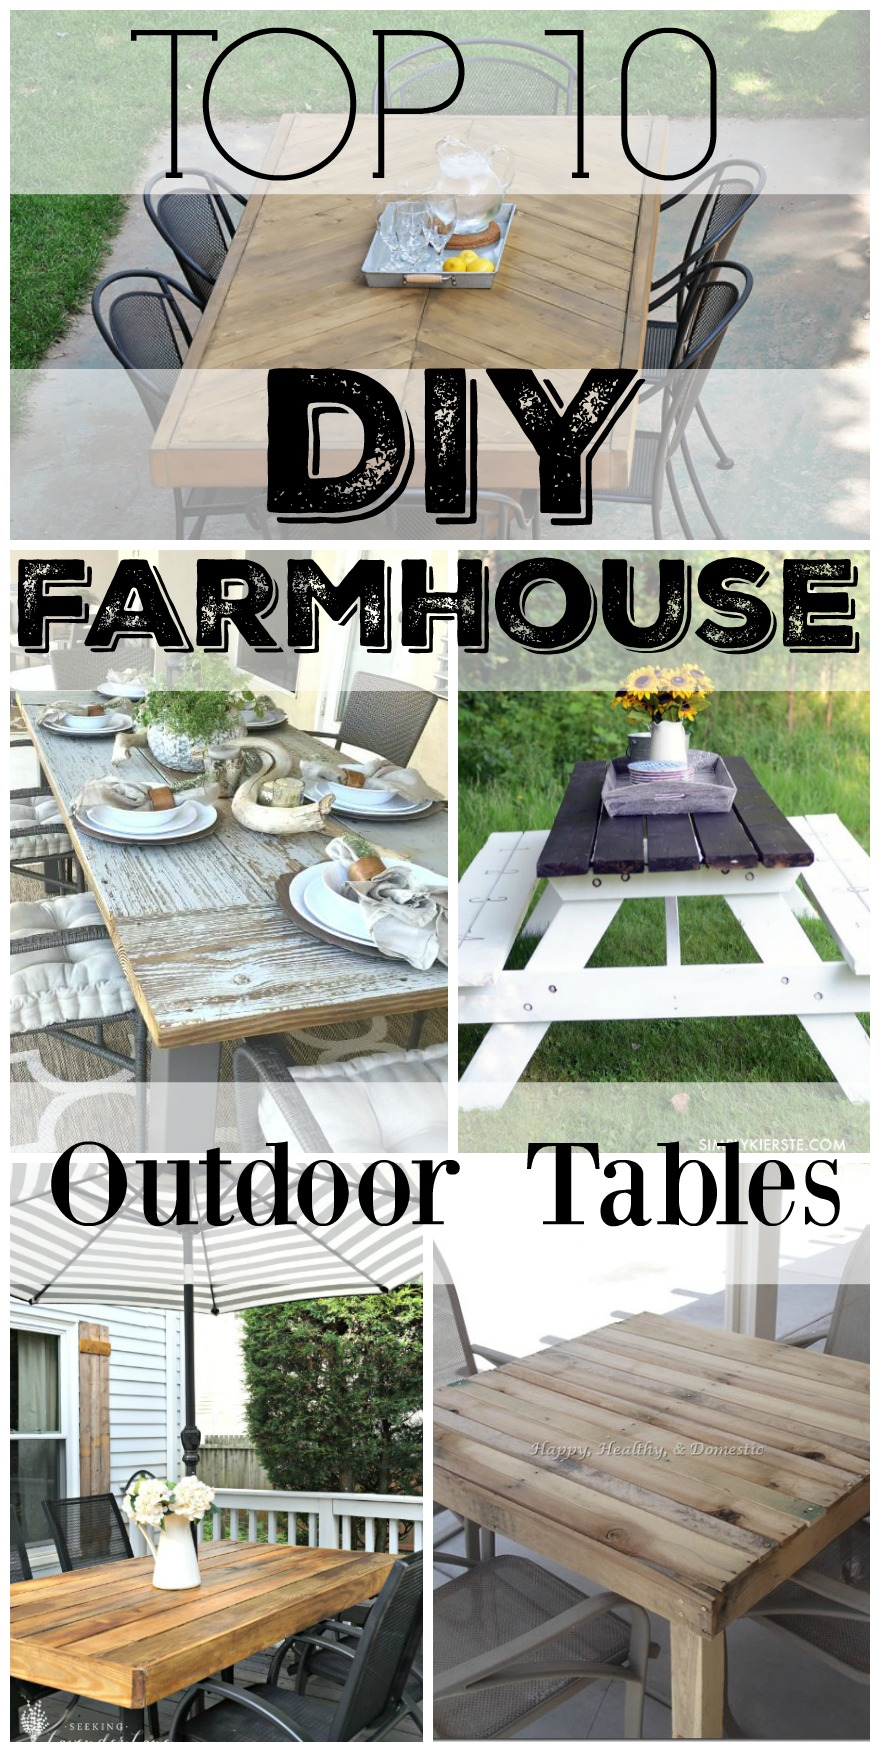 Diy Outdoor Farmhouse Table Throughout Top 10 Diy Farmhouse Outdoor Tables Diy Outdoor Farmhouse Tables Seeking Lavendar Lane